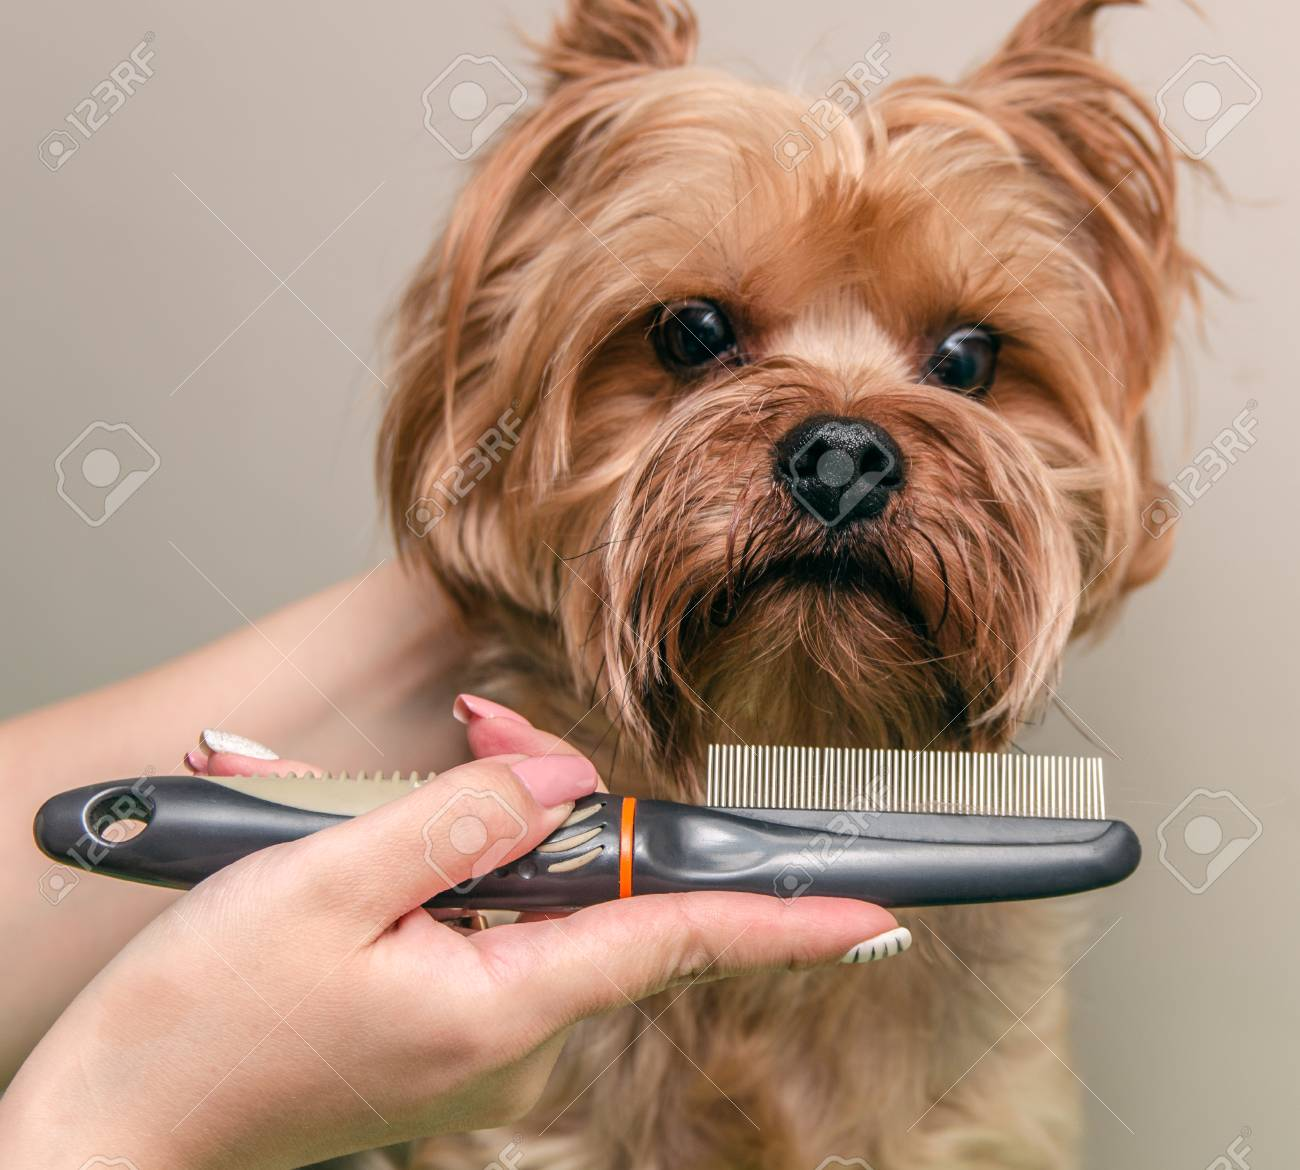 Yorkshire Terrier Combing And Doing Grooming Close Up Stock Photo